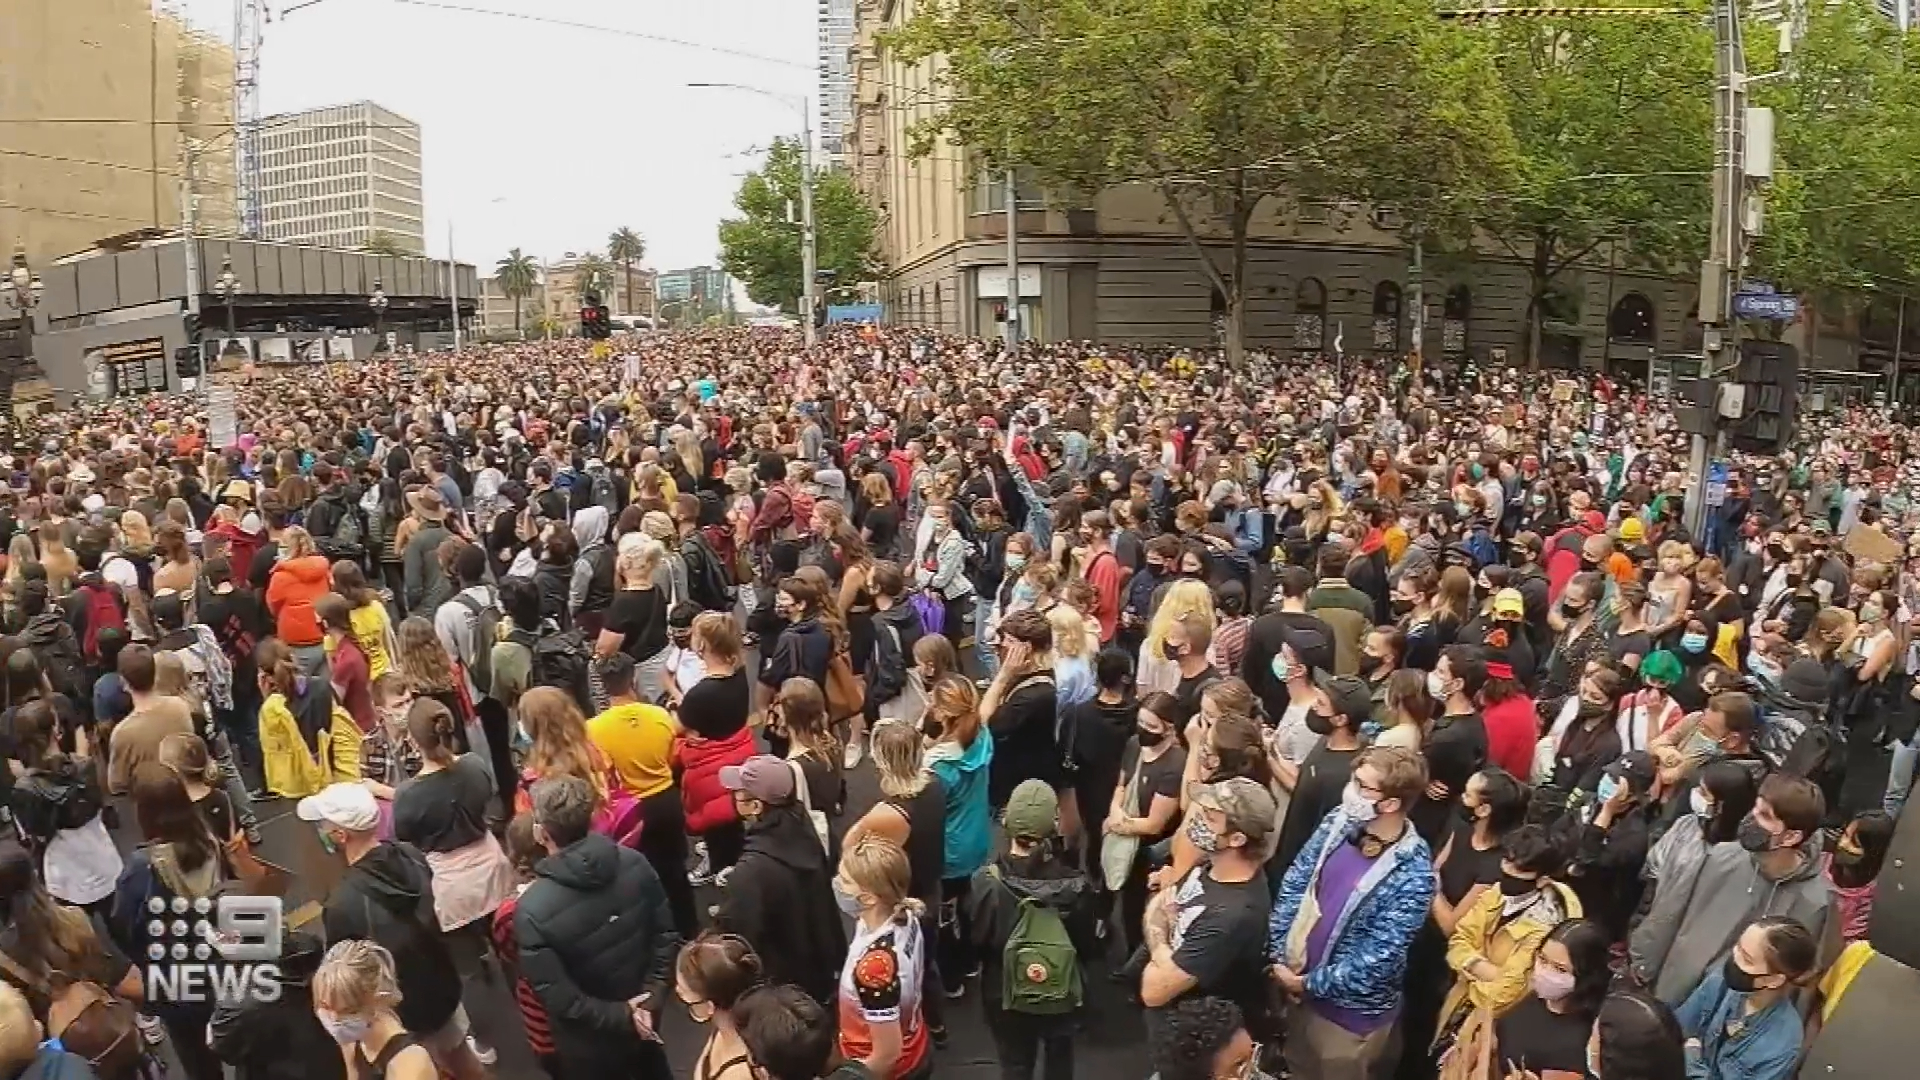 Melbourne Invasion Day march disrupted by lone antagonist